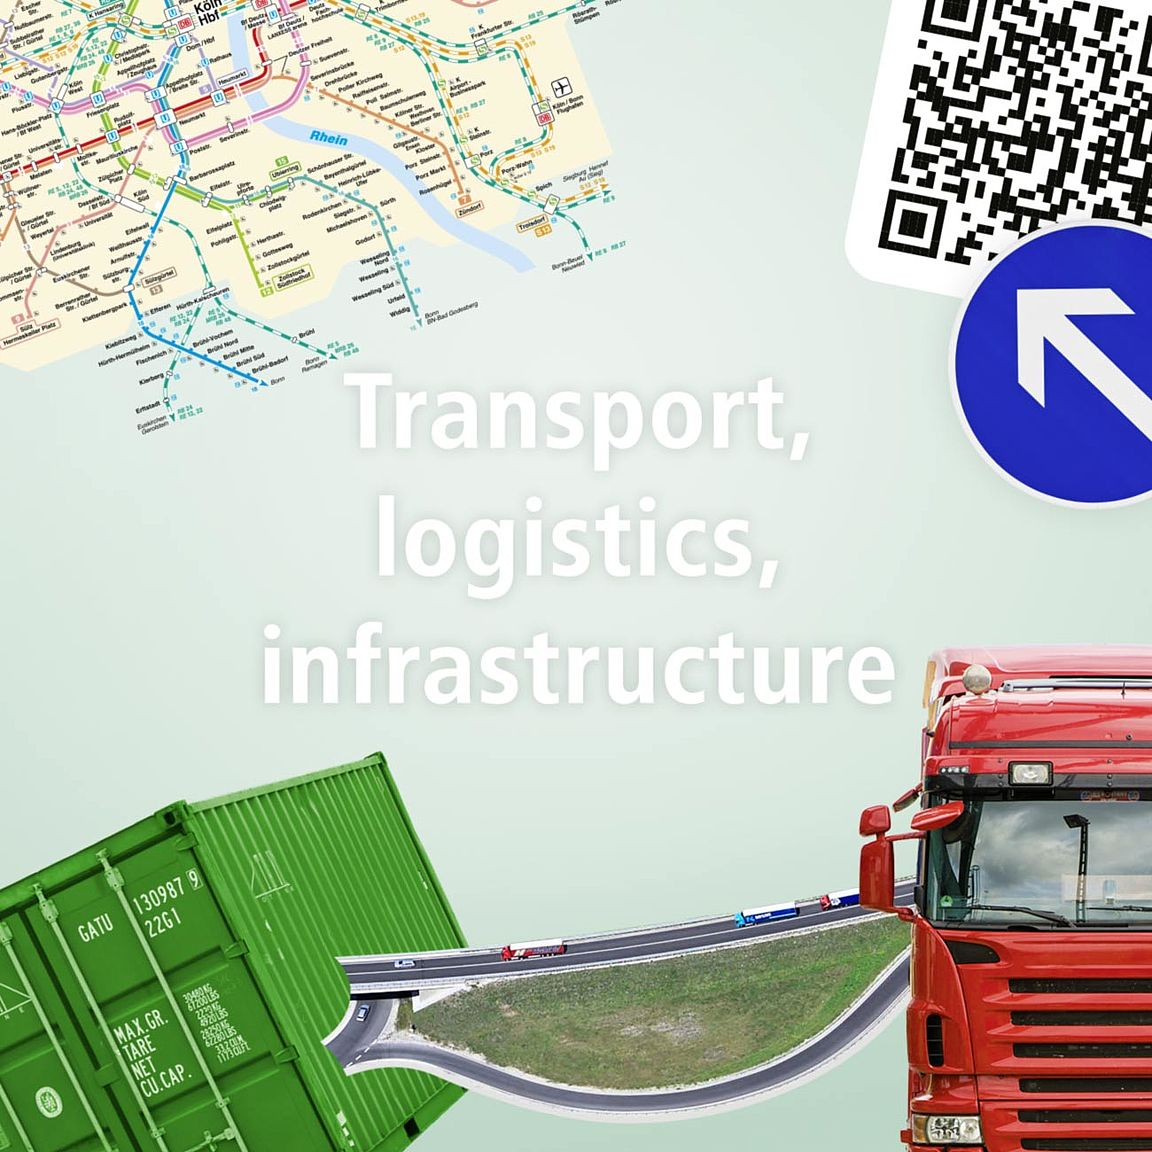 Transport, logistics, infrastructure